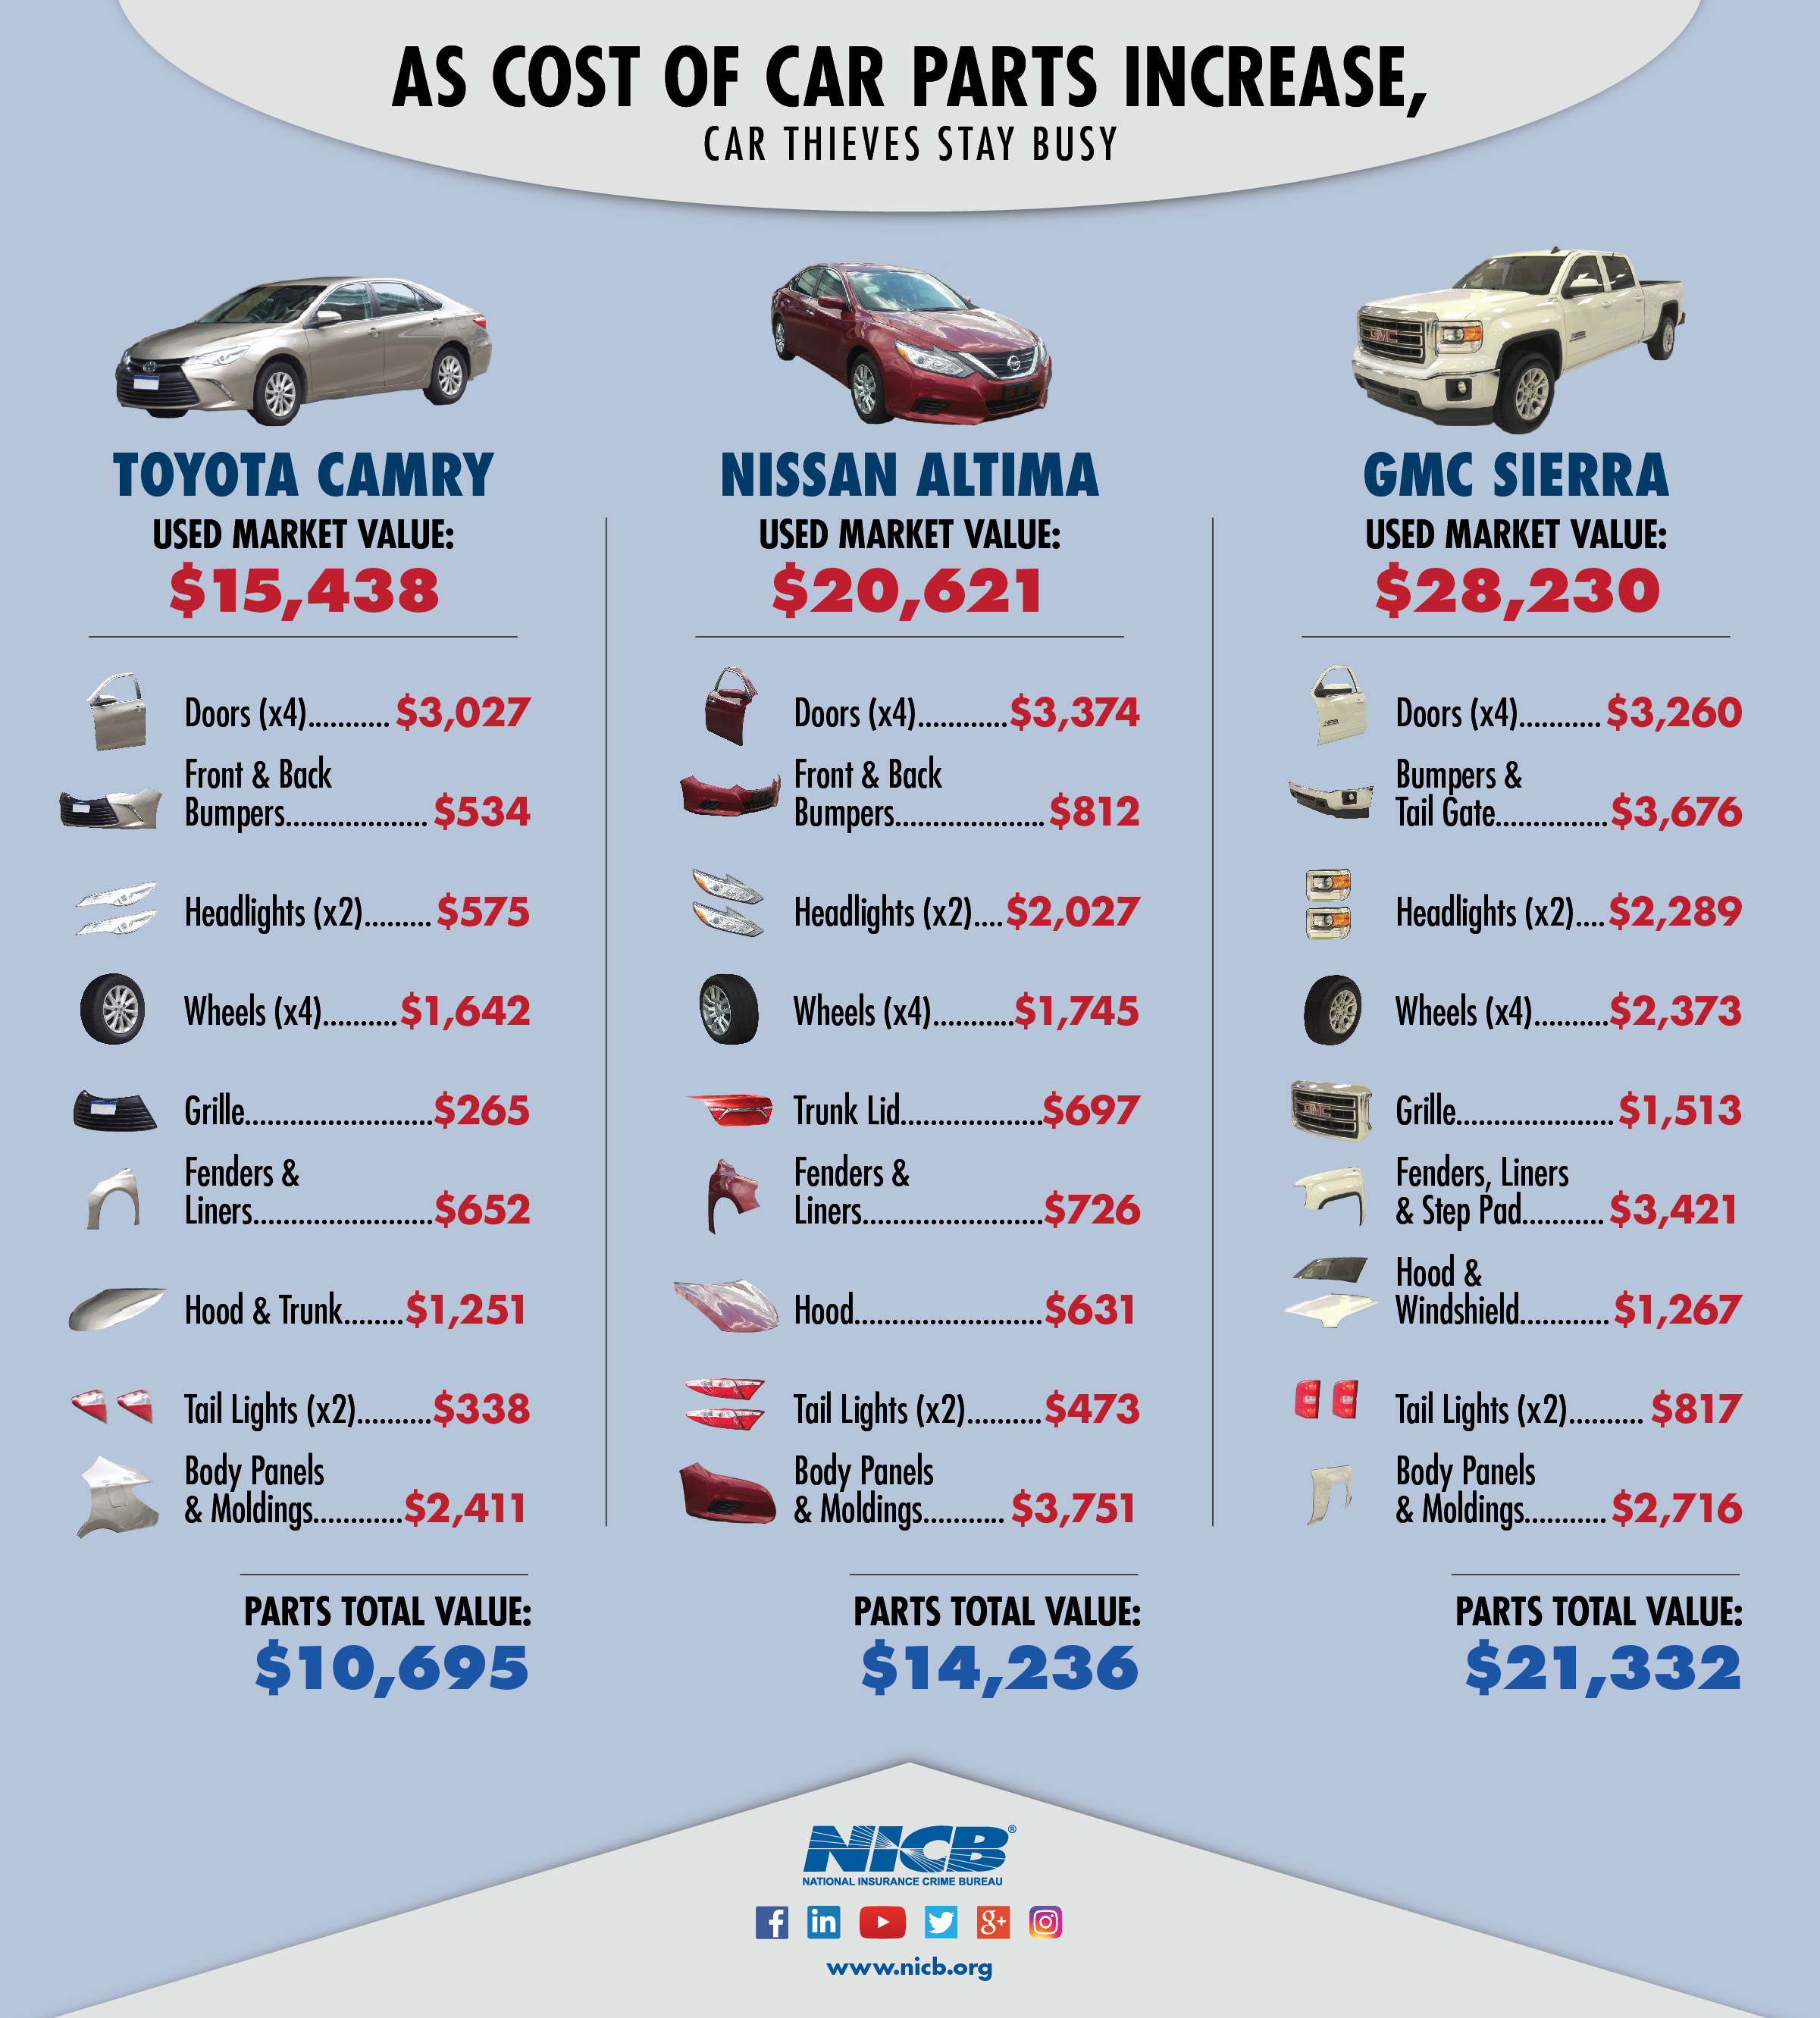 Sell Car For Parts >> Vehicle Parts Prices Are Rising And So Are Vehicle Thefts Nicb